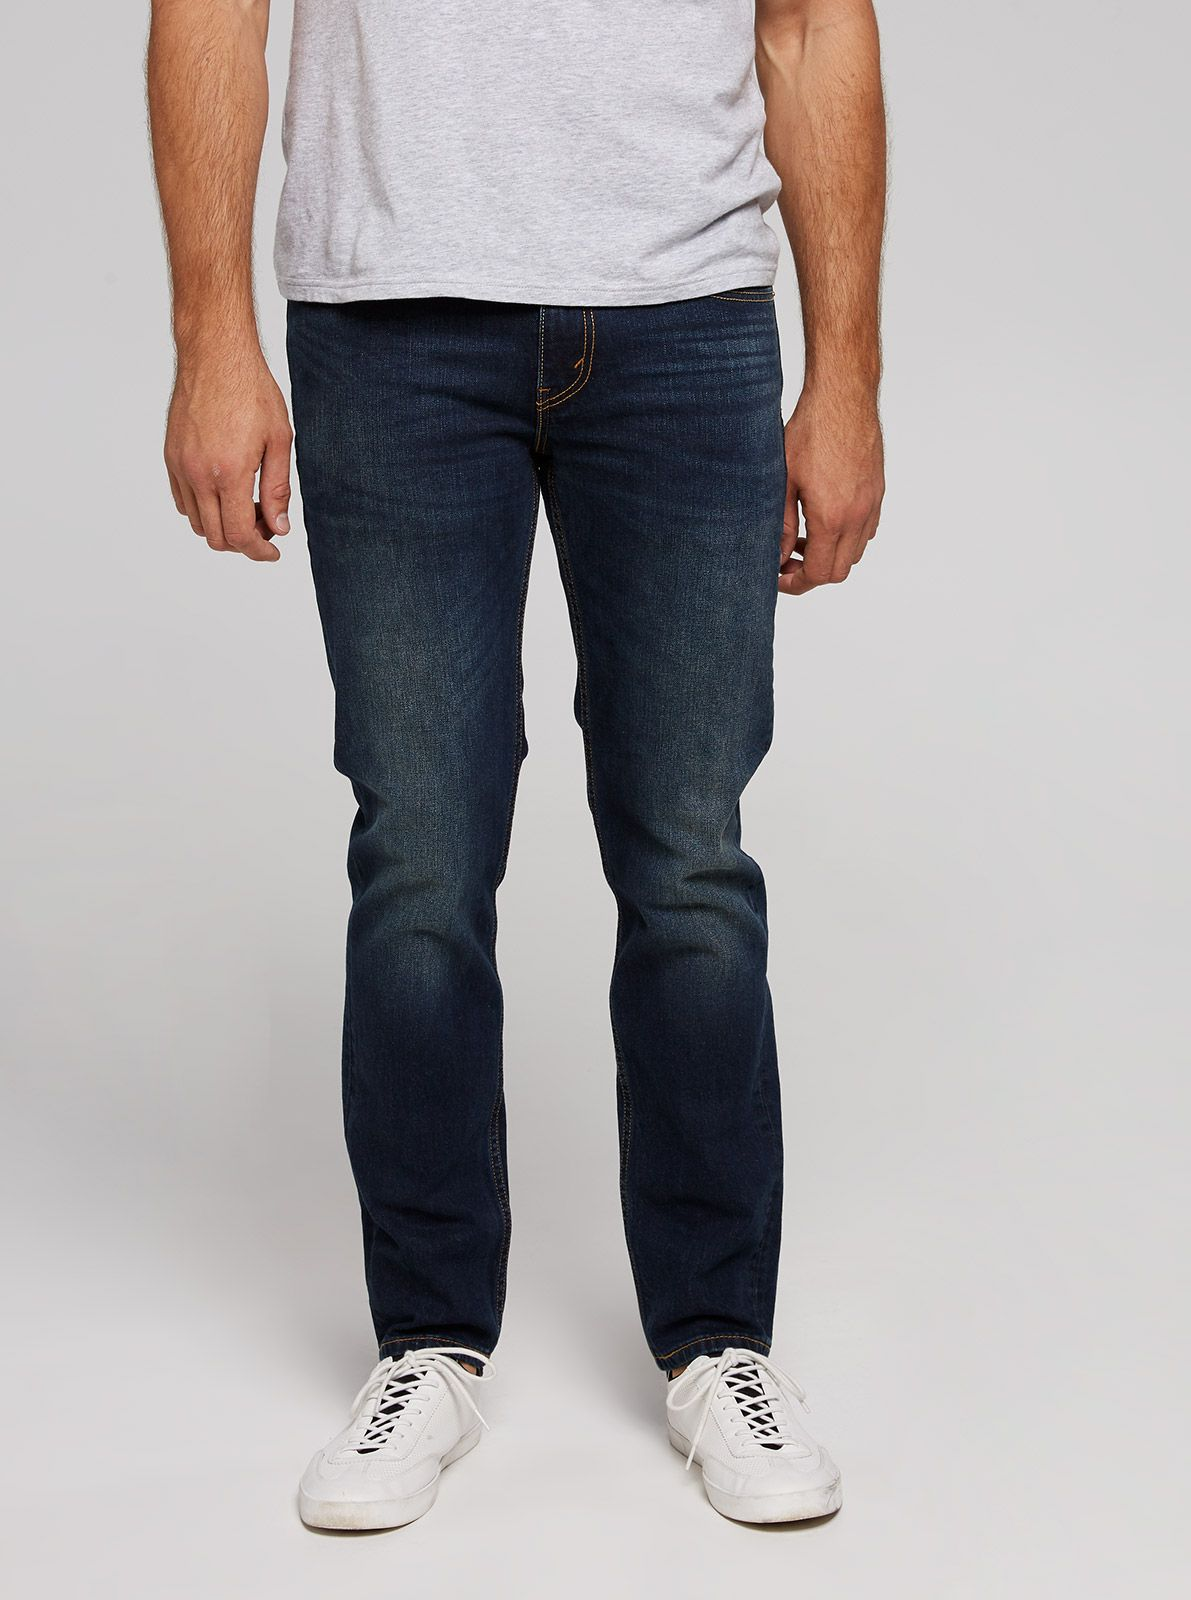 745b8bc1283 Levi's 511 Slim Jean In Sequoia | Fashion 4 Men | Slim jeans, Levis ...